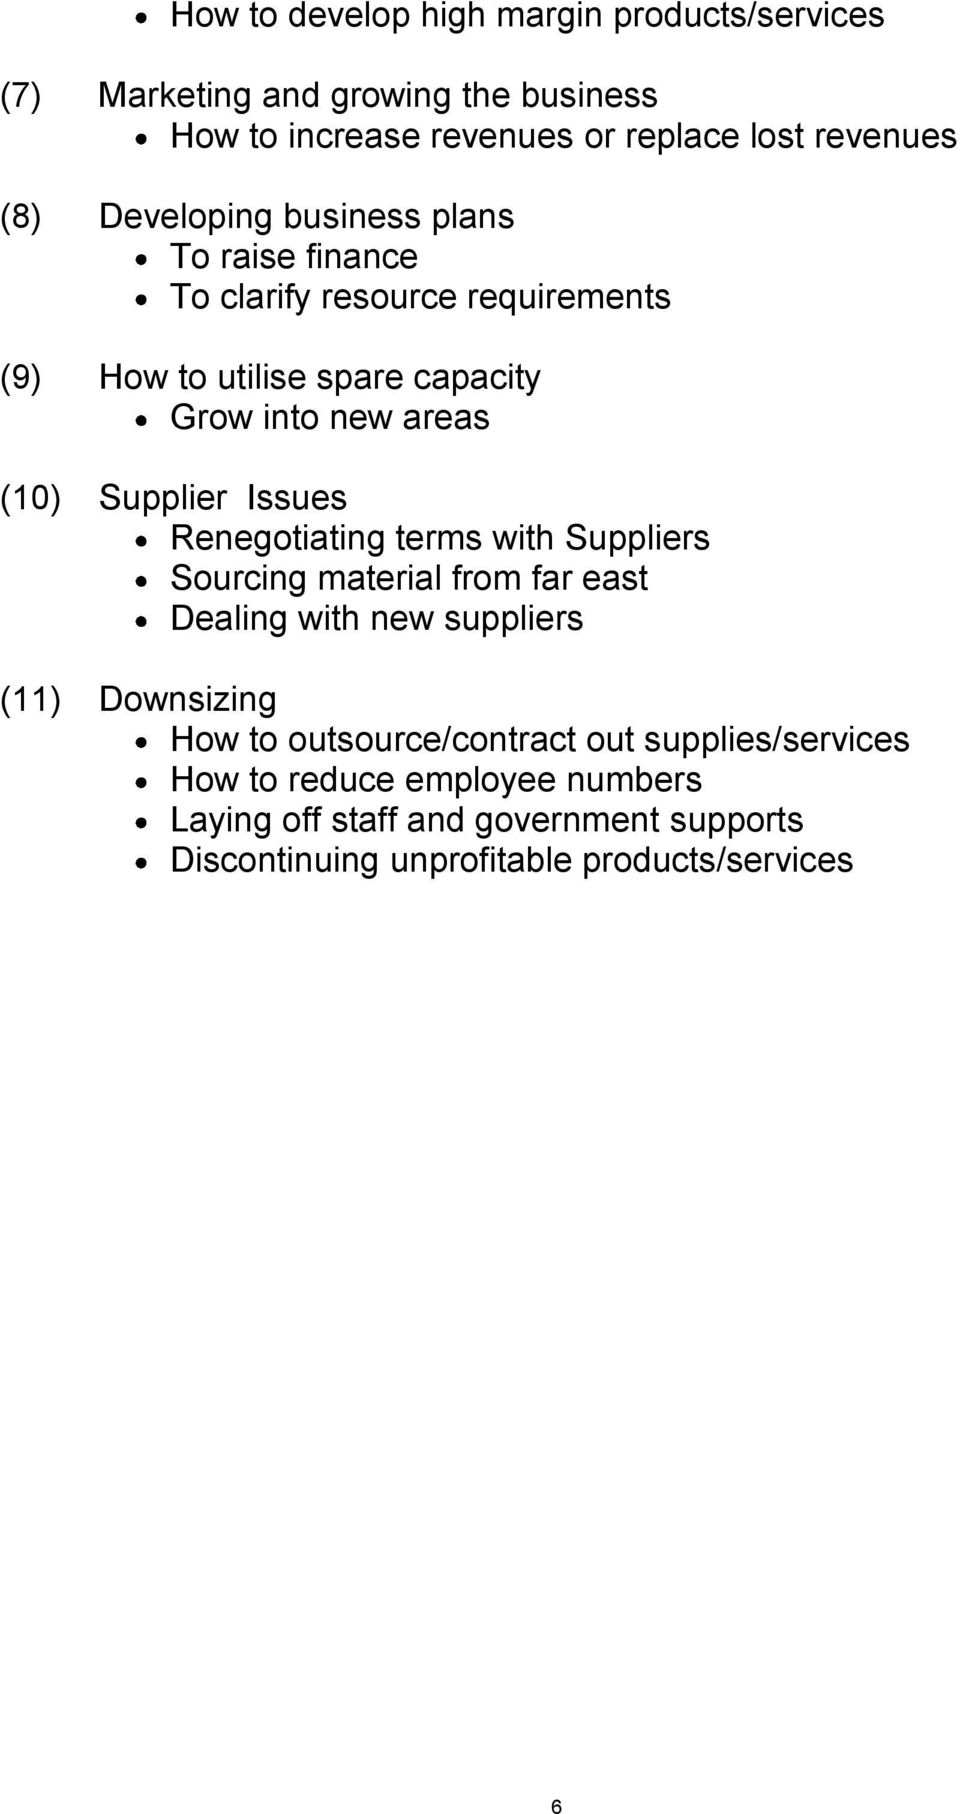 Supplier Issues Renegotiating terms with Suppliers Sourcing material from far east Dealing with new suppliers (11) Downsizing How to